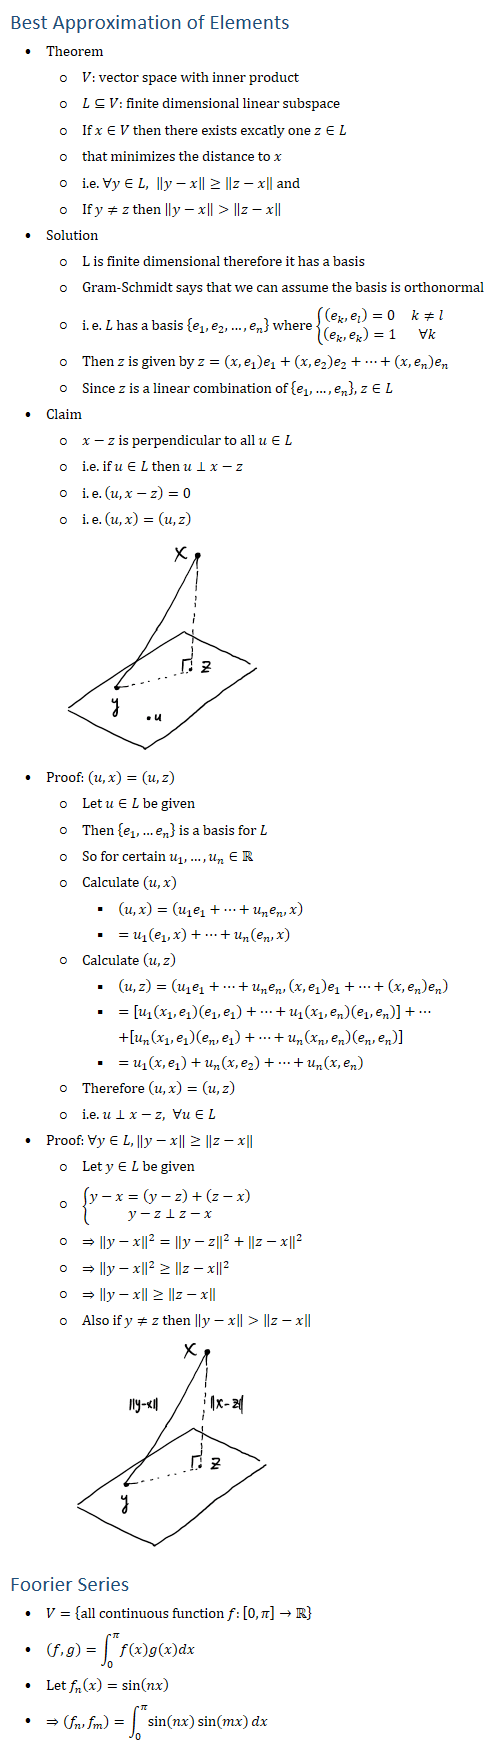 Best Approximation of Elements • Theorem ○ V: vector space with inner product ○ L⊆V: finite dimensional linear subspace ○ If x∈V then there exists excatly one z∈L ○ that minimizes the distance to x ○ i.e. ∀y∈L, ‖y−x‖≥‖z−x‖ and ○ If y≠z then ‖y−x‖>‖z−x‖ • Solution ○ L is finite dimensional therefore it has a basis ○ Gram-Schmidt says that we can assume the basis is orthonormal ○ i.e. L has a basis {e_1,e_2,…,e_n } where {■8((e_k,e_l )=0&k≠l@(e_k,e_k )=1&∀k)┤ ○ Then z is given by z=(x,e_1 ) e_1+(x,e_2 ) e_2+…+(x,e_n ) e_n ○ Since z is a linear combination of {e_1,…,e_n }, z∈L • Claim ○ x−z is perpendicular to all u∈L ○ i.e. if u∈L then u⊥x−z ○ i.e. (u,x−z)=0 ○ i.e. (u,x)=(u,z) • Proof: (u,x)=(u,z) ○ Let u∈L be given ○ Then {e_1,…e_n } is a basis for L ○ So for certain u_1,…,u_n∈R ○ Calculate (u,x) § (u,x)=(u_1 e_1+…+u_n e_n,x) § =u_1 (e_1,x)+…+u_n (e_n,x) ○ Calculate (u,z) § (u,z)=(u_1 e_1+…+u_n e_n,(x,e_1 ) e_1+…+(x,e_n ) e_n ) § =[u_1 (x_1,e_1 )(e_1,e_1 )+…+u_1 (x_1,e_n )(e_1,e_n )]+… +[u_n (x_1,e_1 )(e_n,e_1 )+…+u_n (x_n,e_n )(e_n,e_n )] § =u_1 (x,e_1 )+u_n (x,e_2 )+…+u_n (x,e_n ) ○ Therefore (u,x)=(u,z) ○ i.e. u⊥x−z, ∀u∈L • Proof: ∀y∈L, ‖y−x‖≥‖z−x‖ ○ Let y∈L be given ○ {█(y−x=(y−z)+(z−x)@y−z⊥z−x)┤ ○ ⇒‖y−x‖^2=‖y−z‖^2+‖z−x‖^2 ○ ⇒‖y−x‖^2≥‖z−x‖^2 ○ ⇒‖y−x‖≥‖z−x‖ ○ Also if y≠z then ‖y−x‖>‖z−x‖ Foorier Series • V={all continuous function f:[0,π]→R • (f,g)\=∫_0^π▒f(x)g(x)dx • Let f_n (x)=sin(nx) • ⇒(f_n,f_m )=∫_0^π▒〖sin(nx) sin(mx)dx〗 x Z........_T as *U x 11×-21 My ex I TZ _ - _ - -- _ -- 80 s